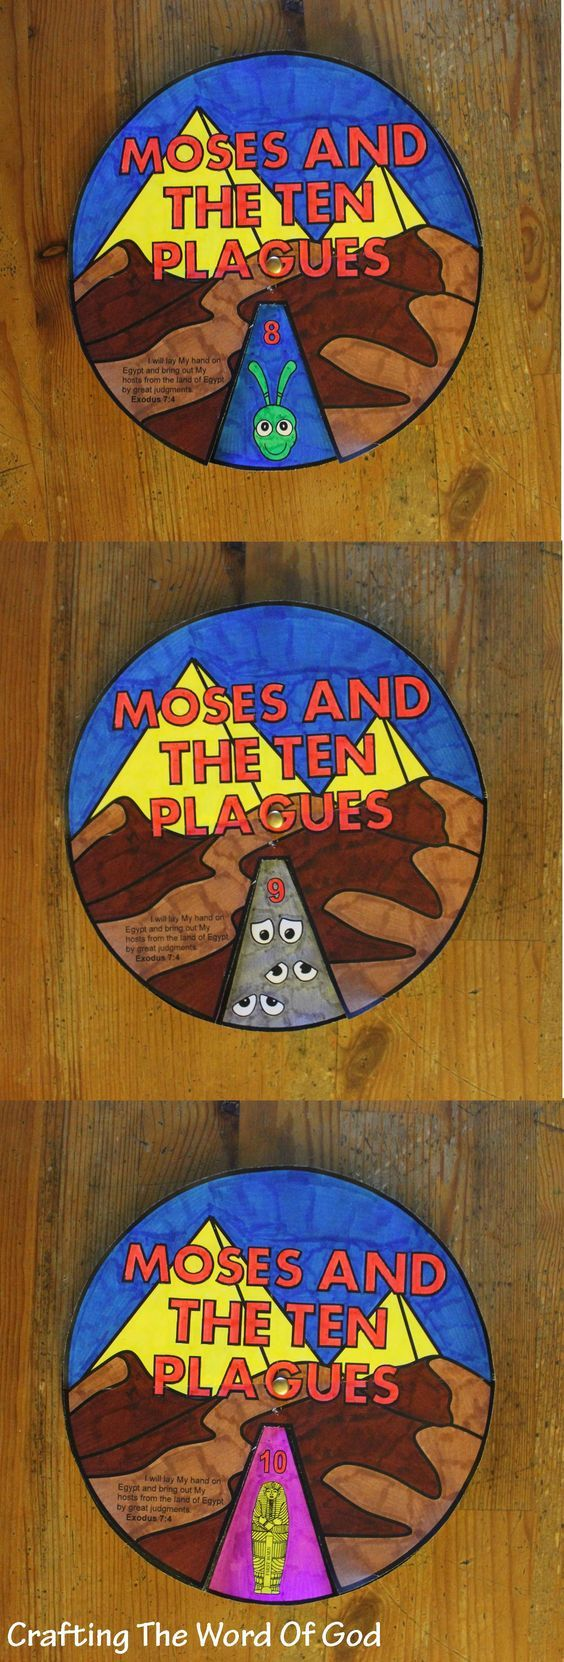 """Use this wheel to help your kids learn the 10 plagues of Egypt. """"4 When Pharaoh does not listen to you, then I will lay My hand on Egypt and bring out My hosts, My people the sons of Israel, from t..."""